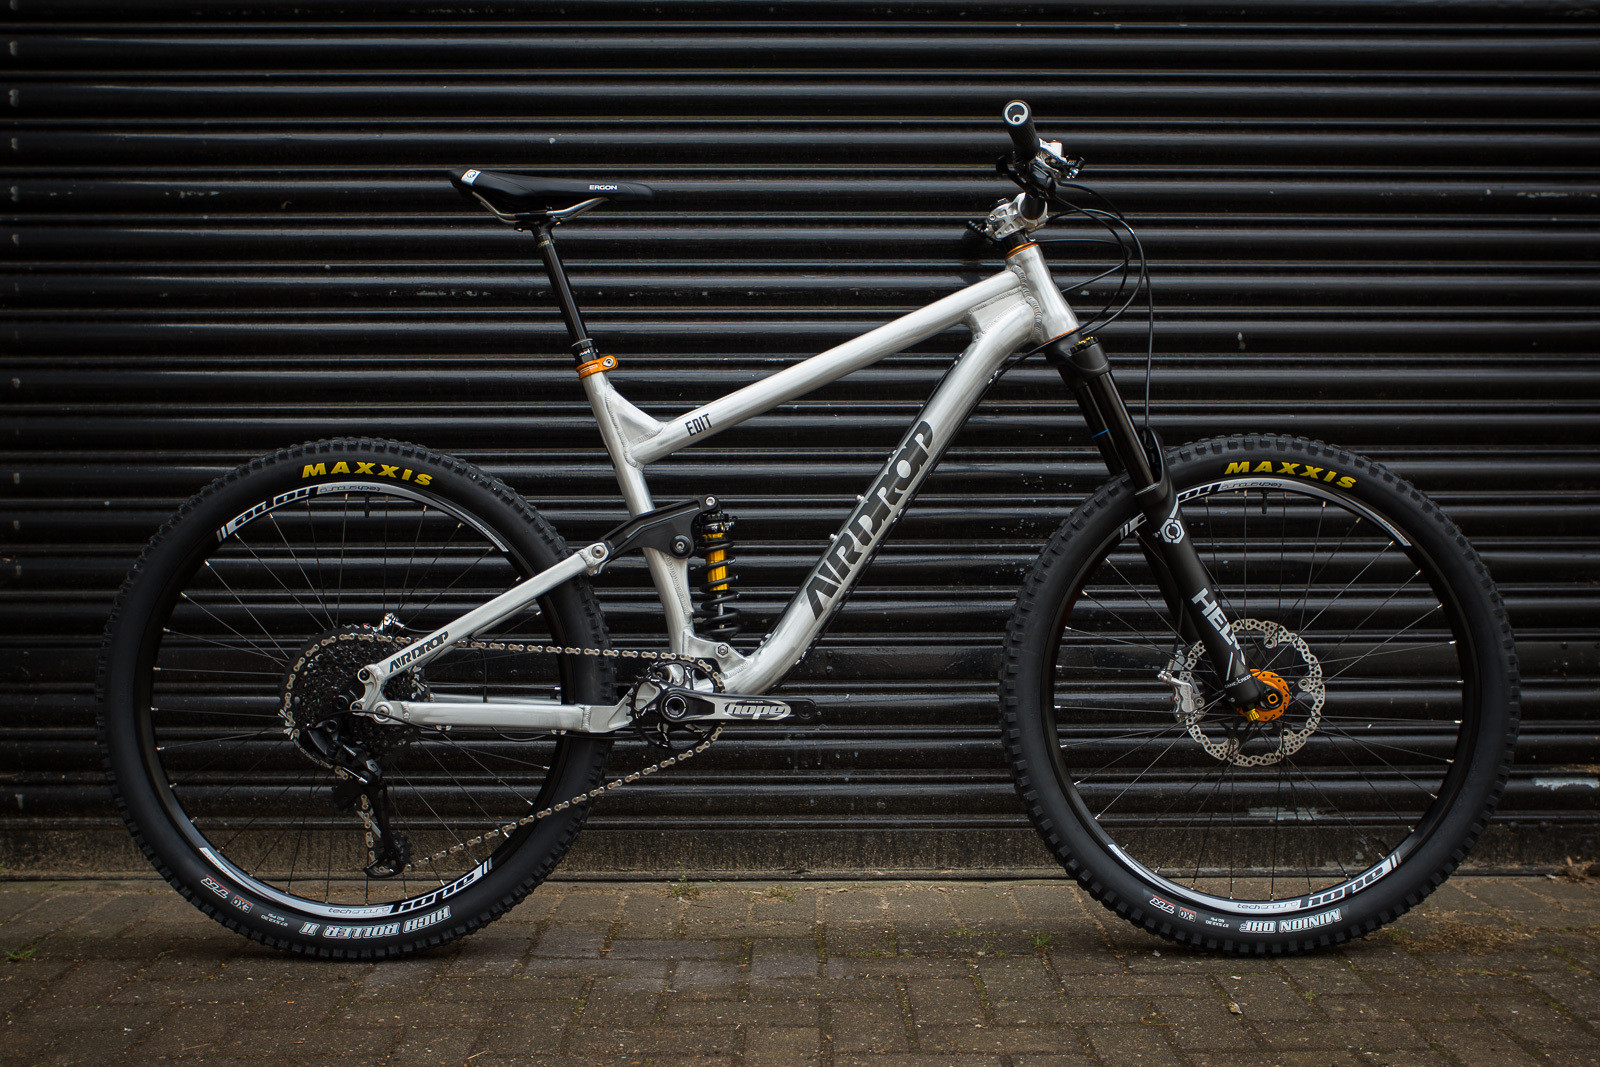 Tom's custom Airdrop Edit v2 with Cane Creek Helm, DBcoil IL, SRAM GX Eagle and Hope Technology finishing kit.